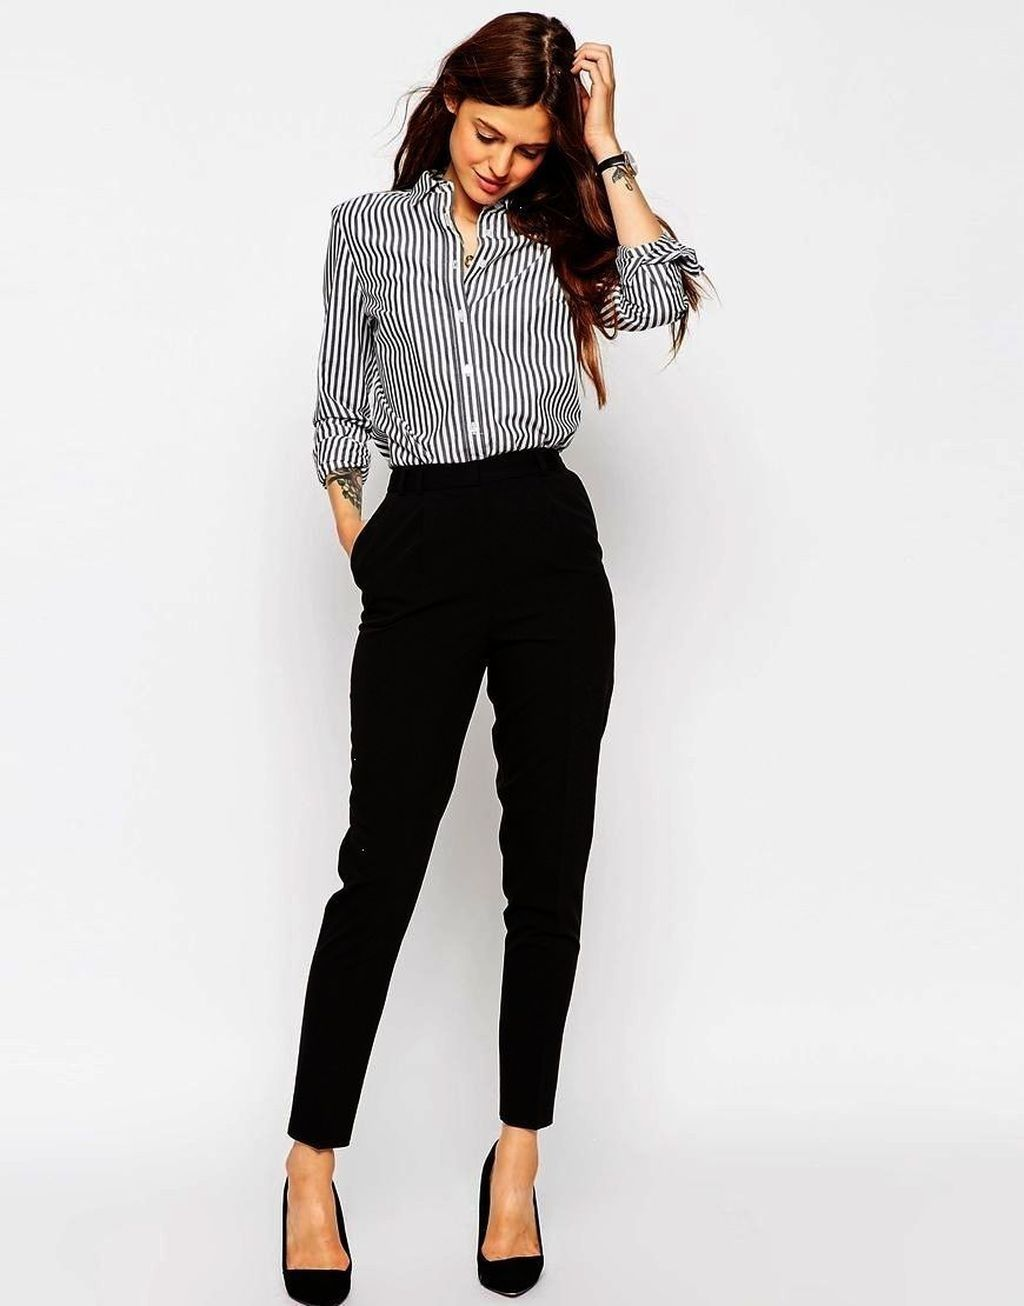 36 Wonderful Work Outfit Ideas For 2019 - TILEPENDANT #workstyle